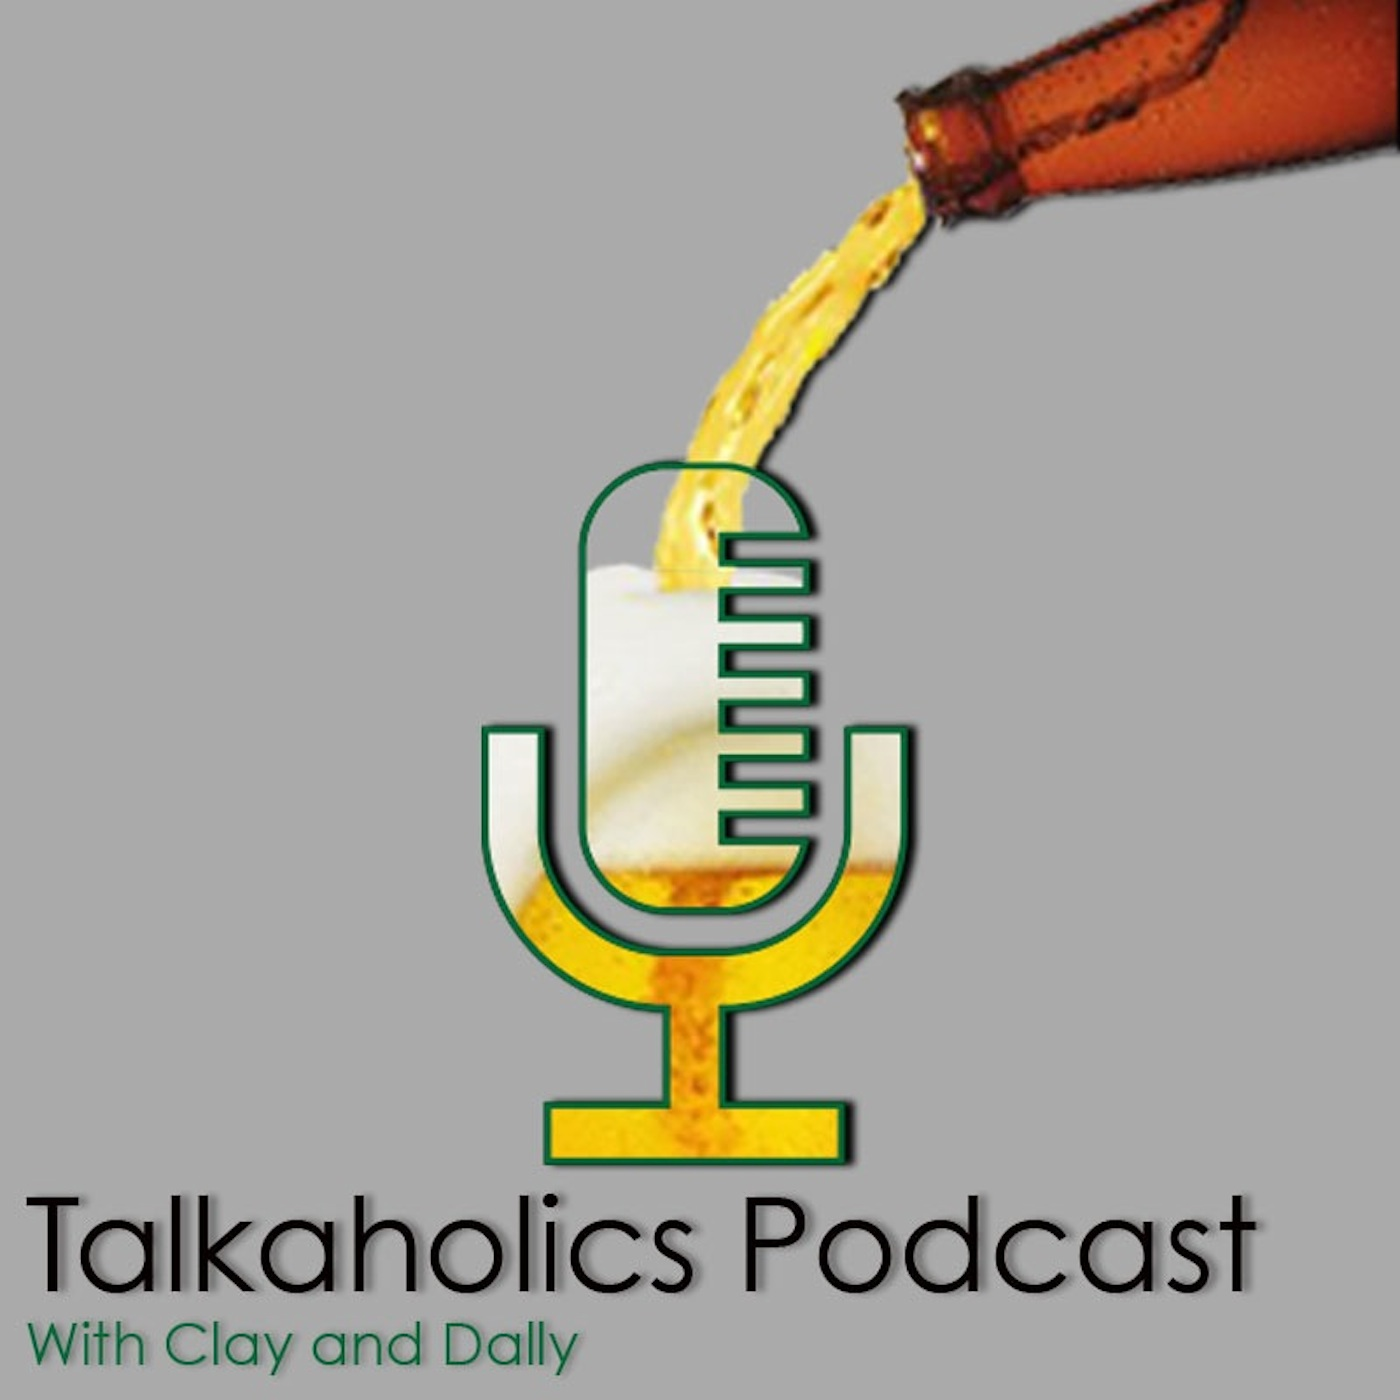 Talkaholics Podcast